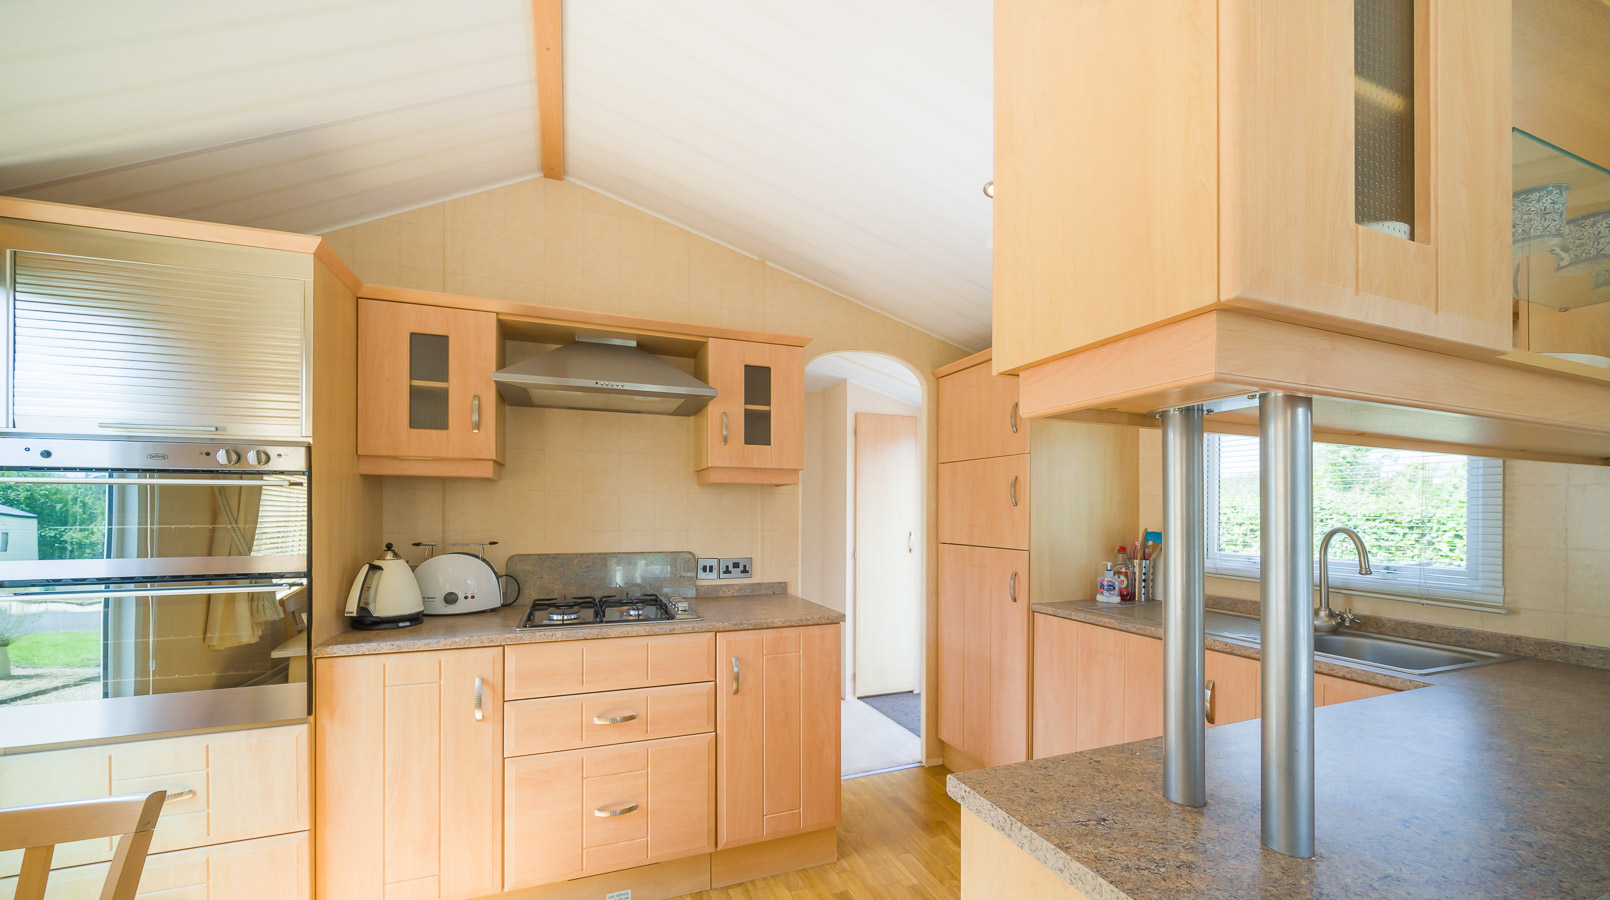 Monkton-Wyld-Static-Mobile-Holiday-Home-Sale-Plot-26-Charmouth-Lyme-Regis-West-Dorset-8